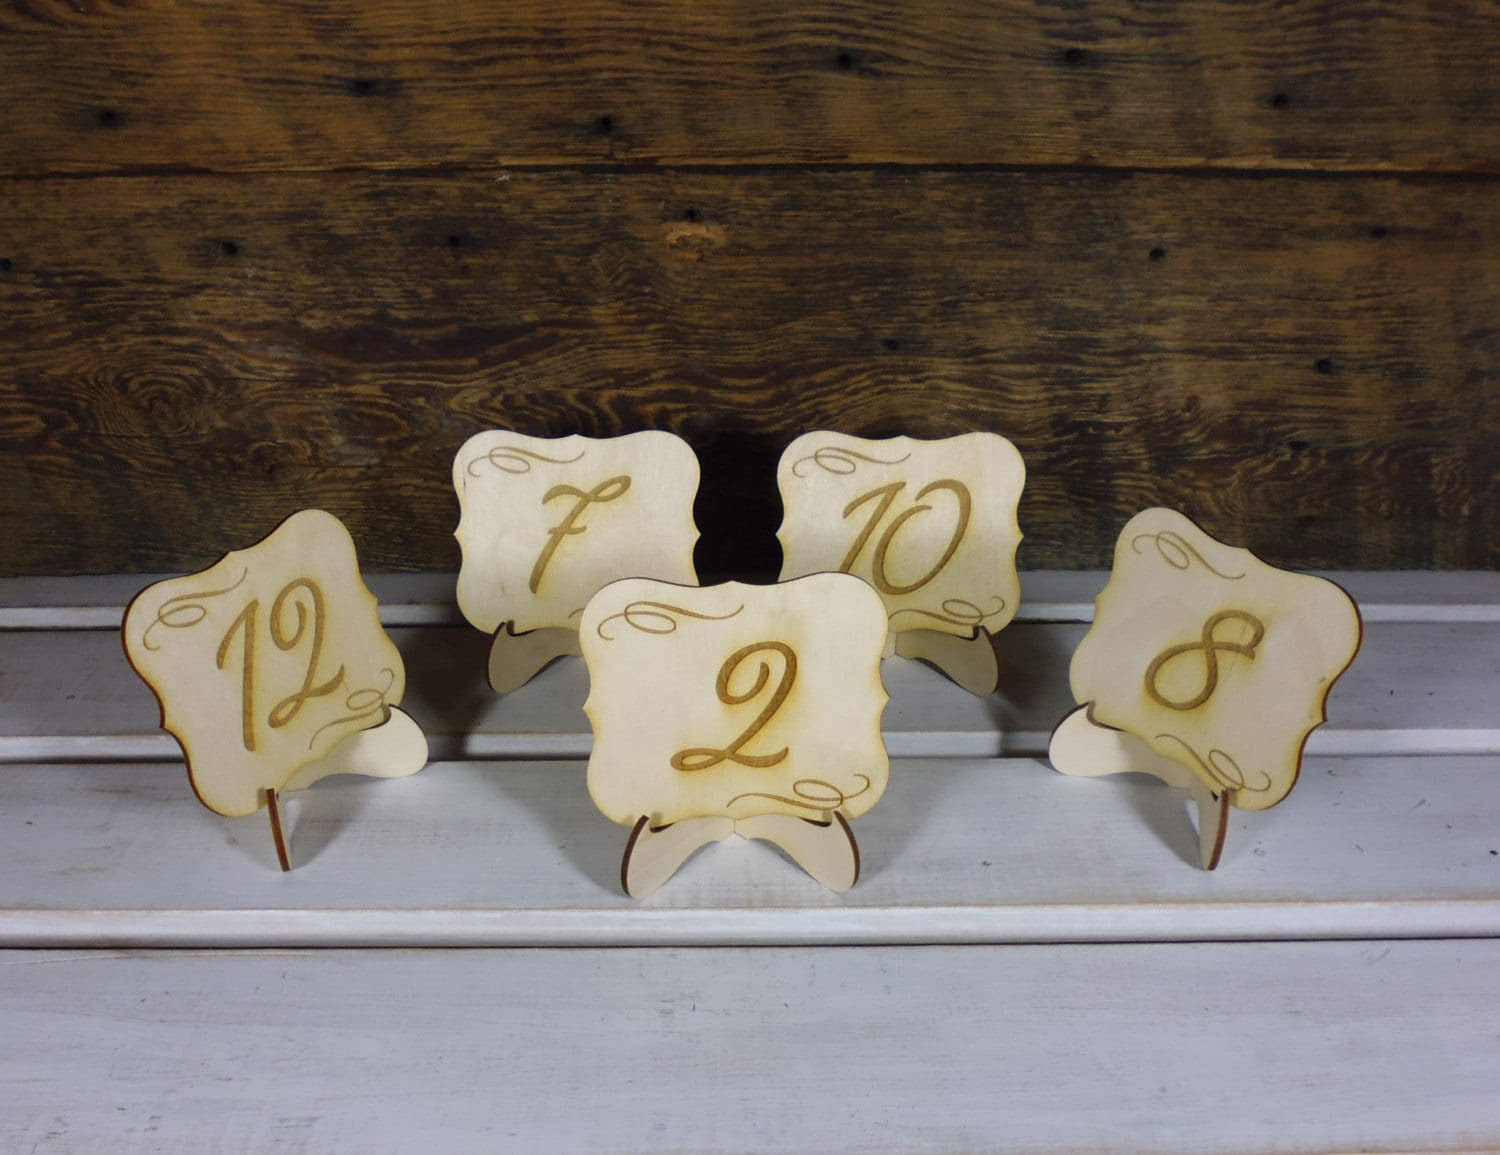 15 Table Number Wedding Signs on Stand Rustic Chic Wedding Table Numbers with Holder Garden or Country Wedding Table Decor Set of 15